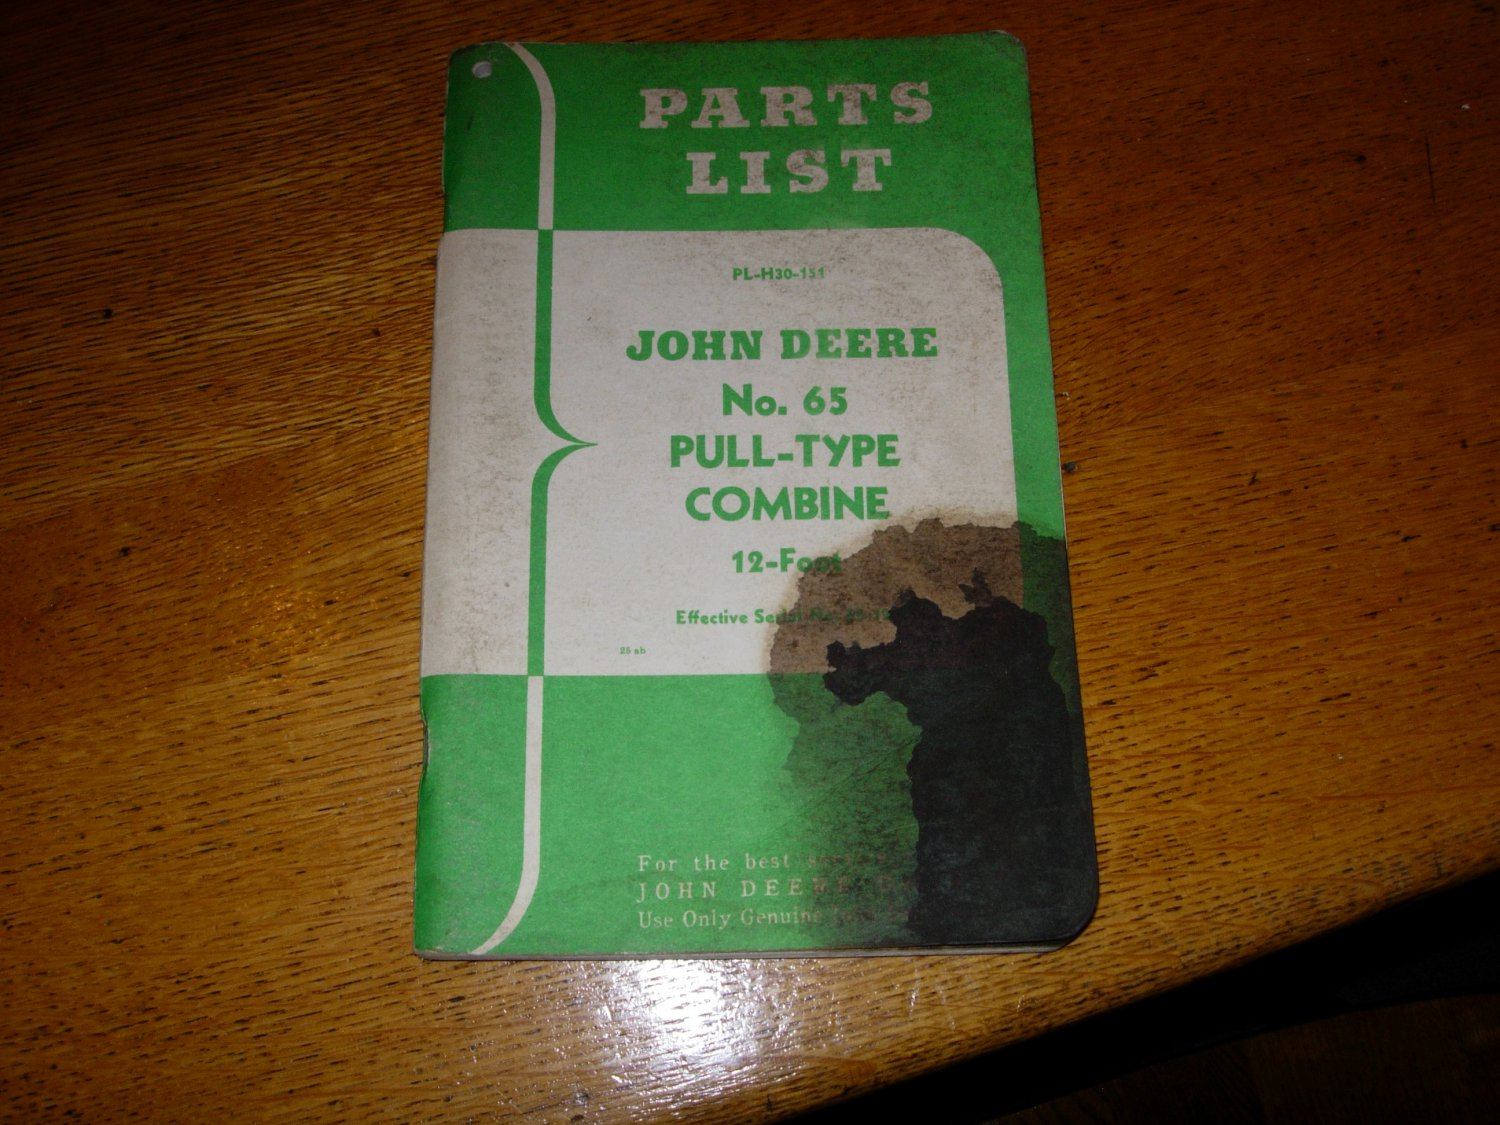 John Deere No 65 Pull-Type Combine Parts Manual #PL-H30-151